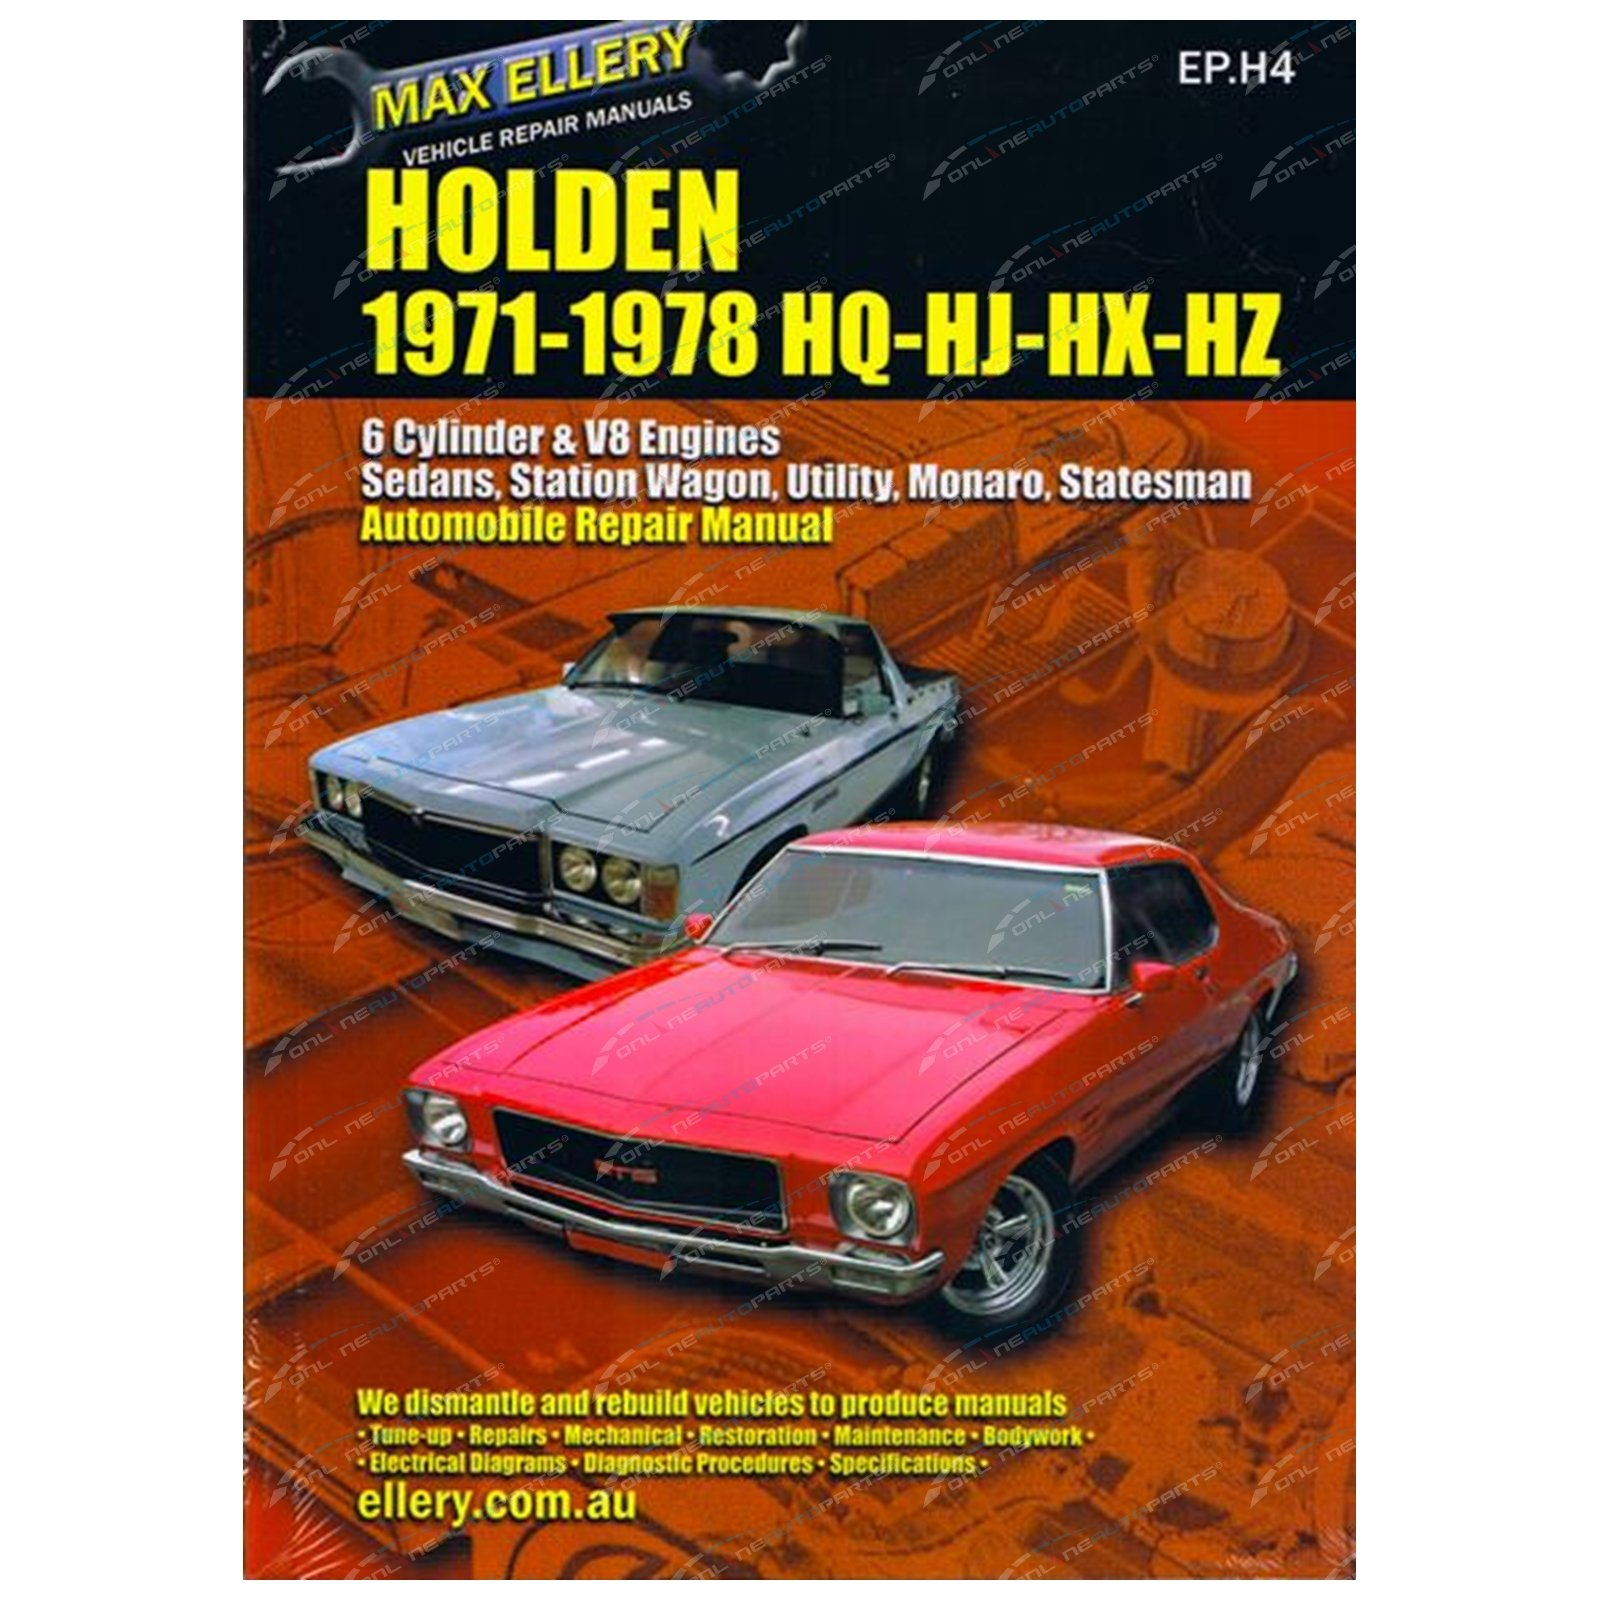 New Workshop Repair Manual Holden Kingswood HQ HJ HX HZ 6cyl V8 Monaro New  Book